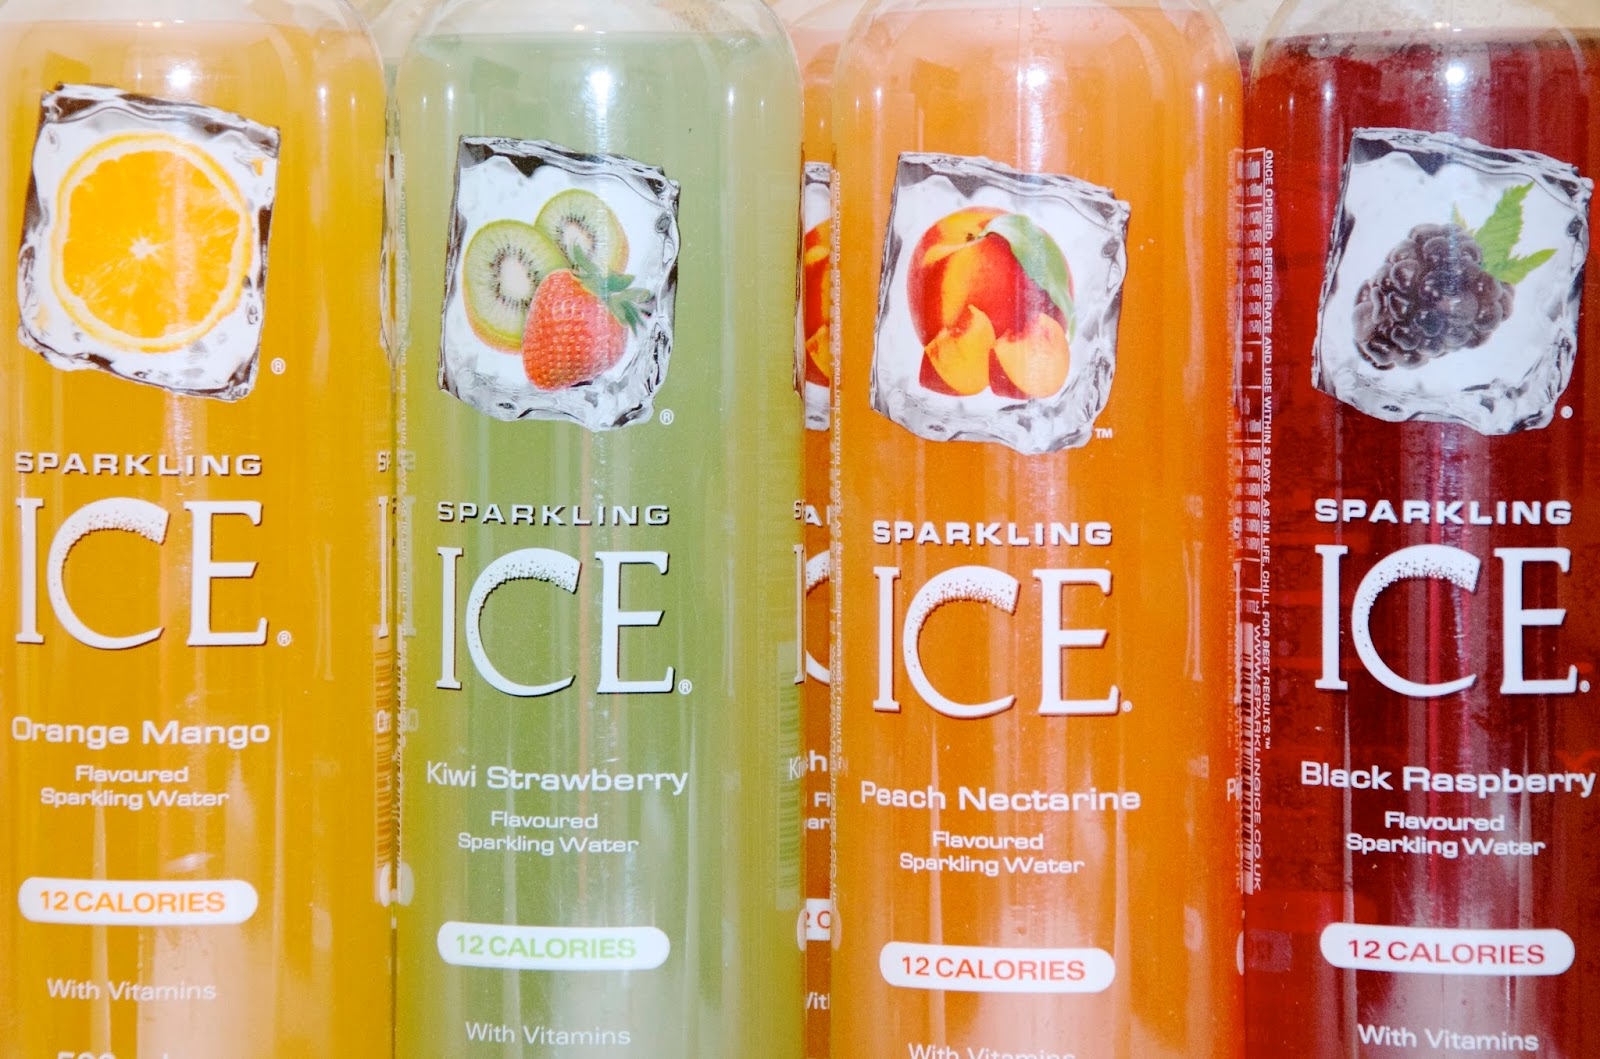 Sparkling Ice Flavors Orange/Mango, Kiwi/Strawberry, Peach/Nectarine & Black Raspberry